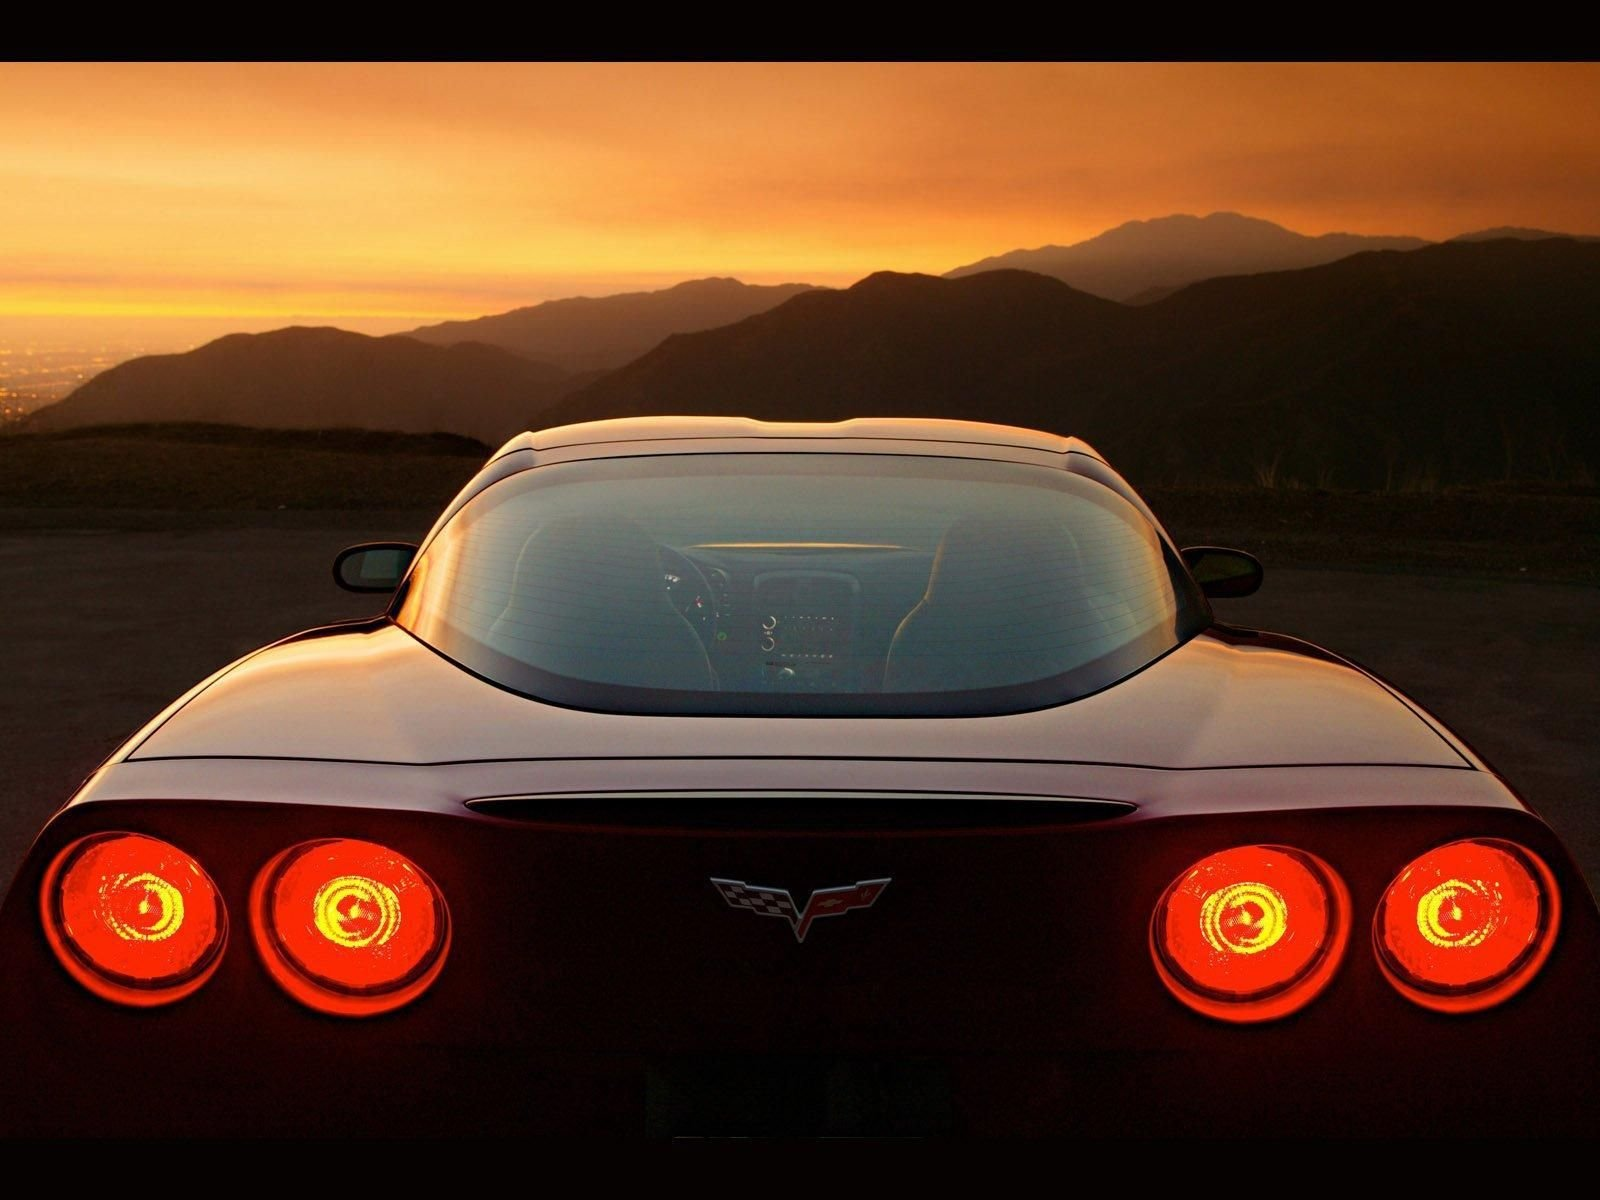 4K Corvette Wallpaper - WallpaperSafari